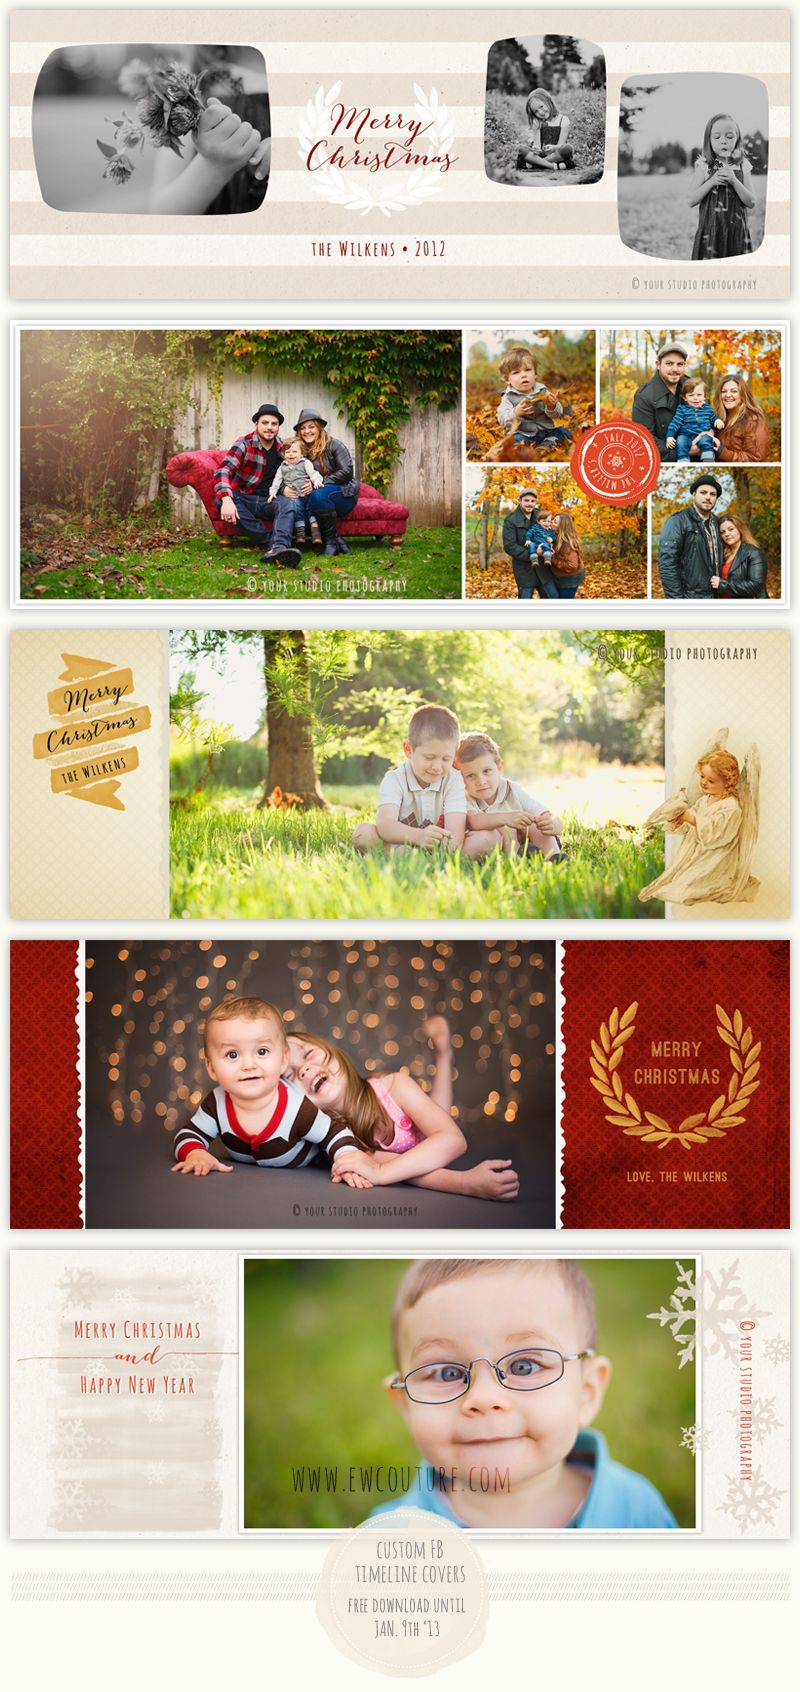 Free Custom Christmas Timeline Covers - December 2012 - EW Couture Monthly Downloads - Photographer Photoshop Templates and Marketing Materials, download expires 9 Jan. 2013